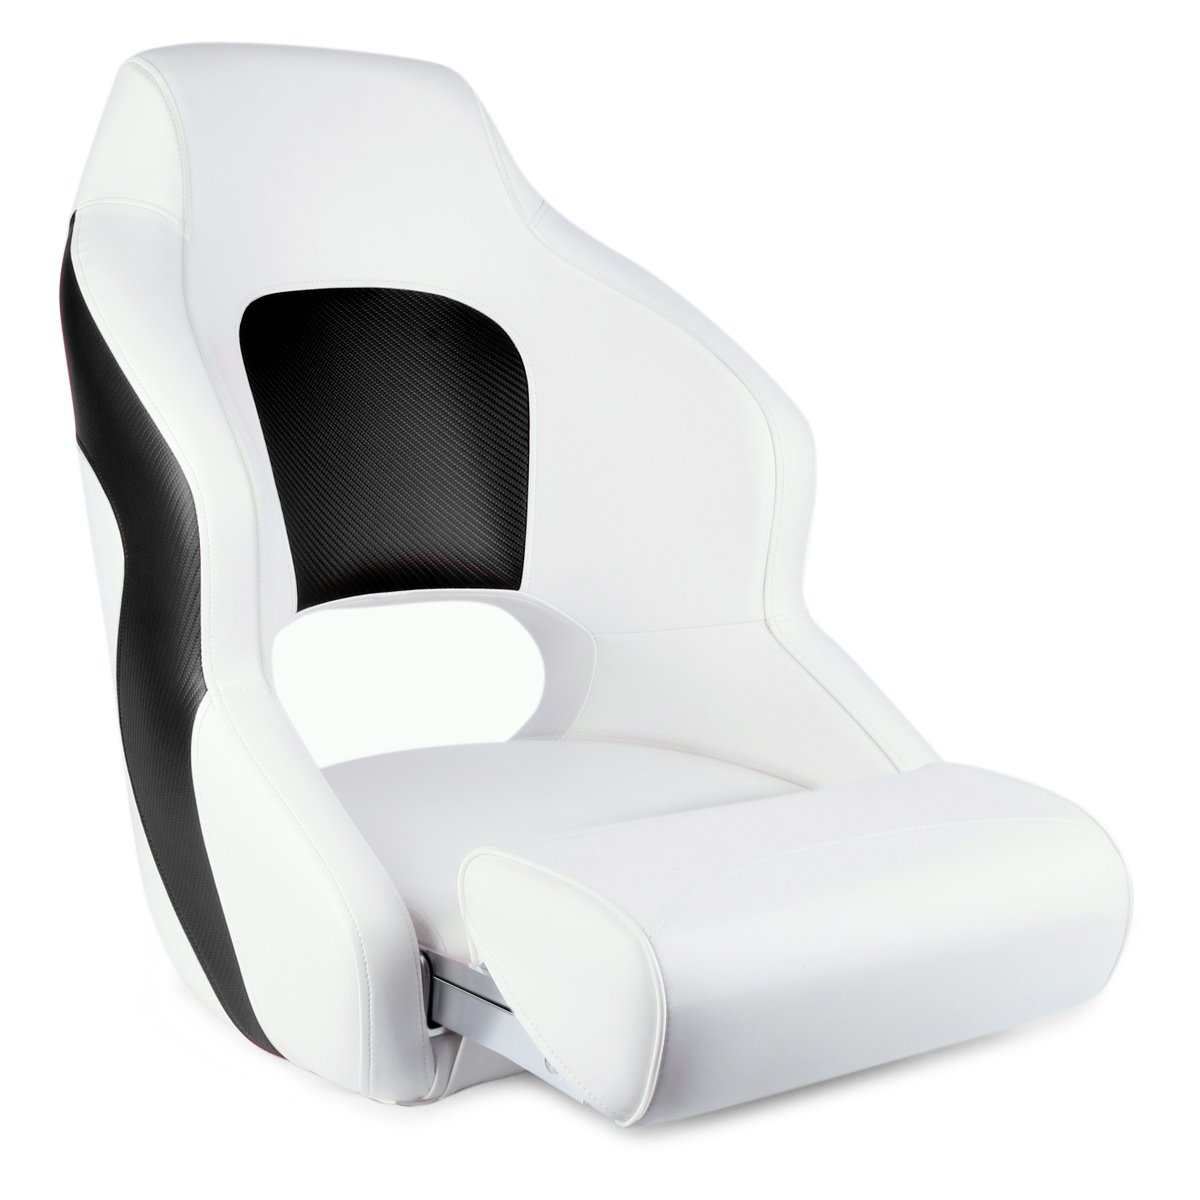 Leader Accessories Two Tone Captain's Bucket Seat Boat Seat (White/Black)